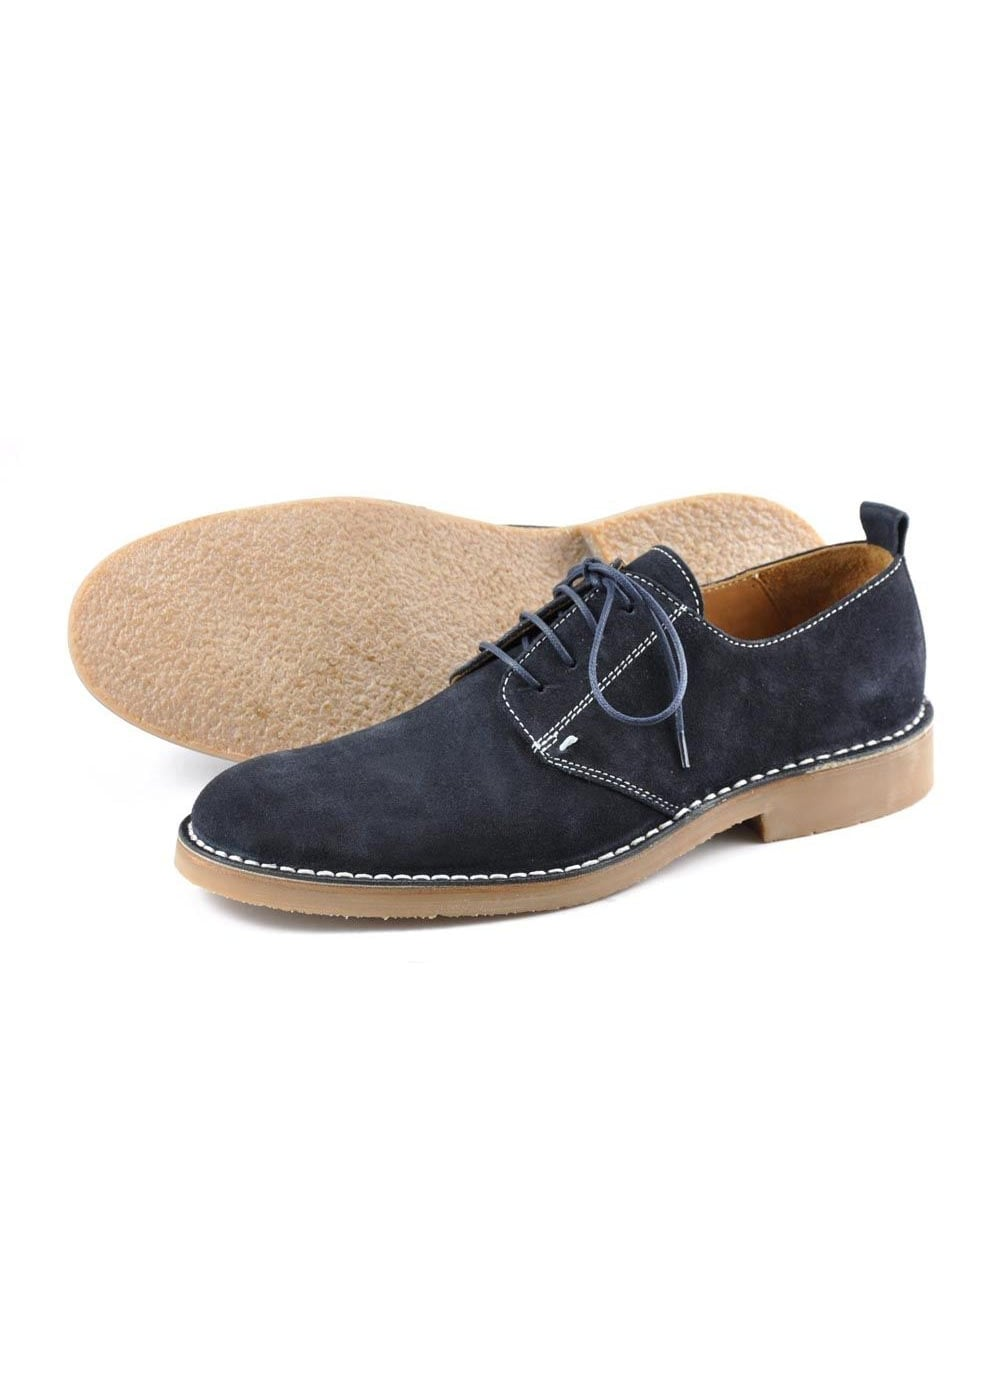 Loake Mojave Suede Shoes  Large Image